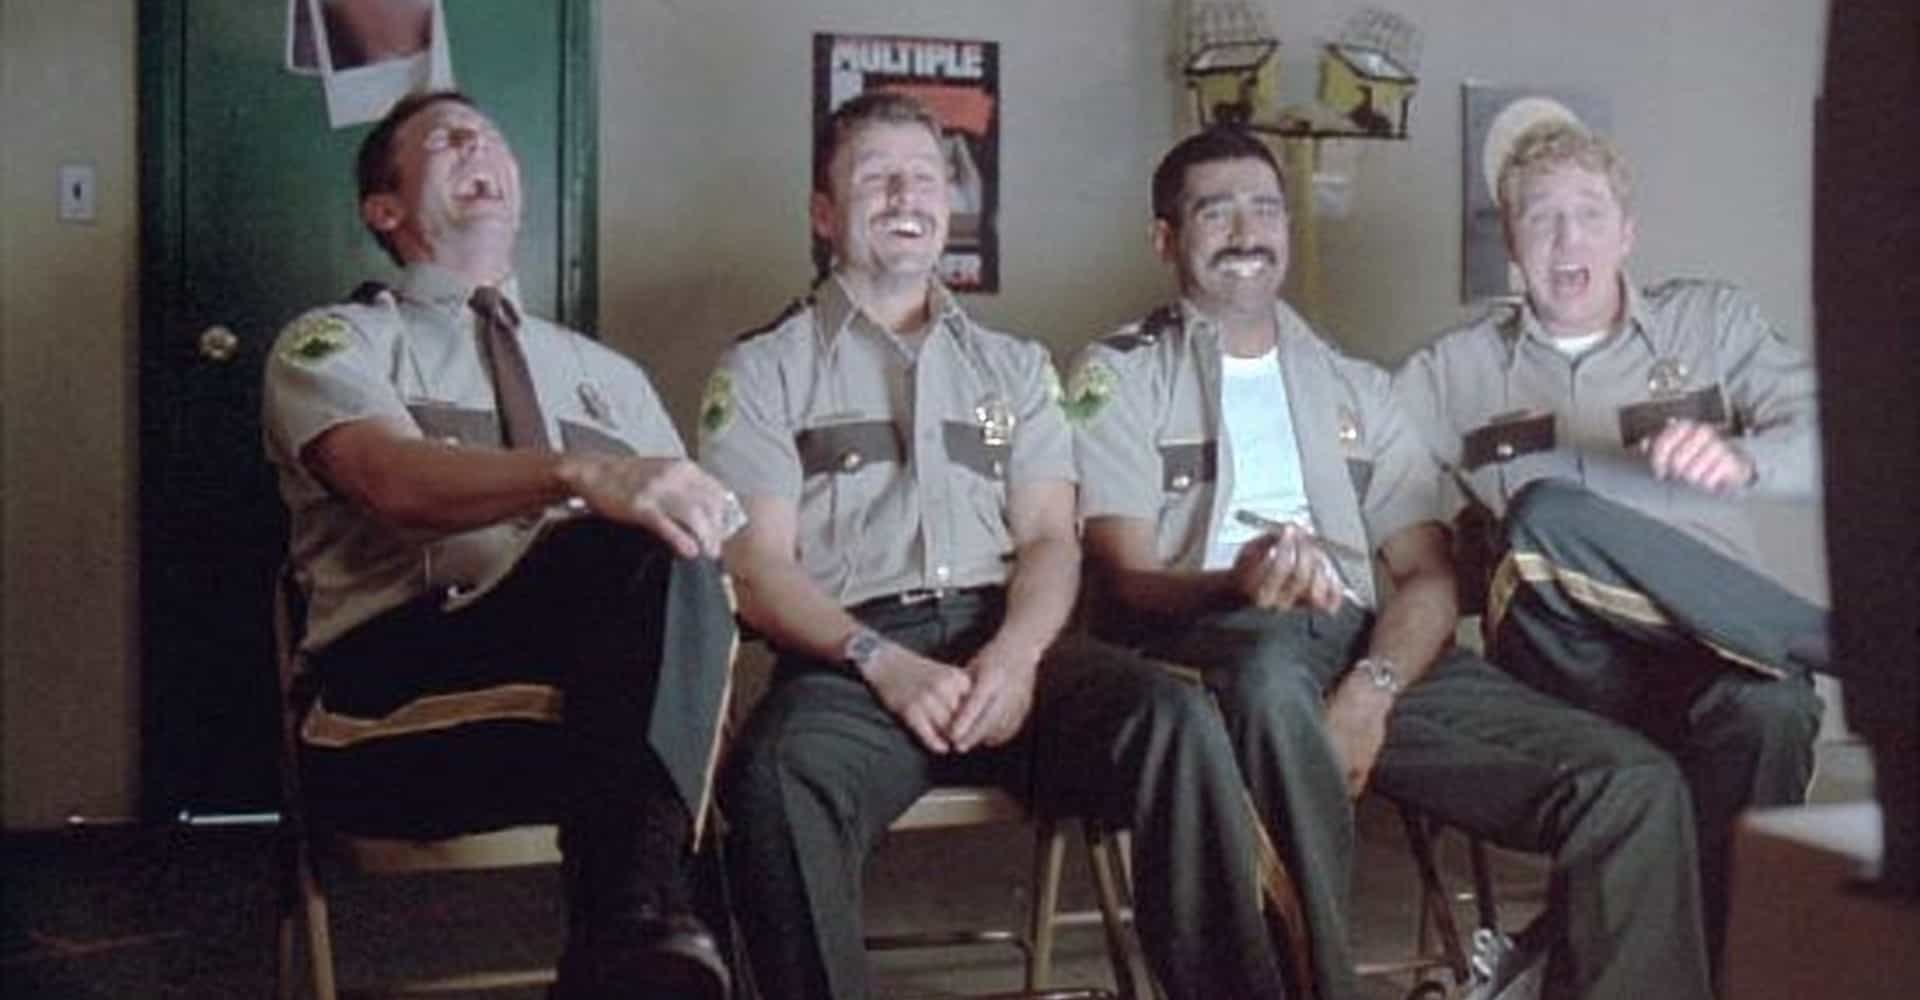 'Super Troopers 3' may become the best-worst movie ever